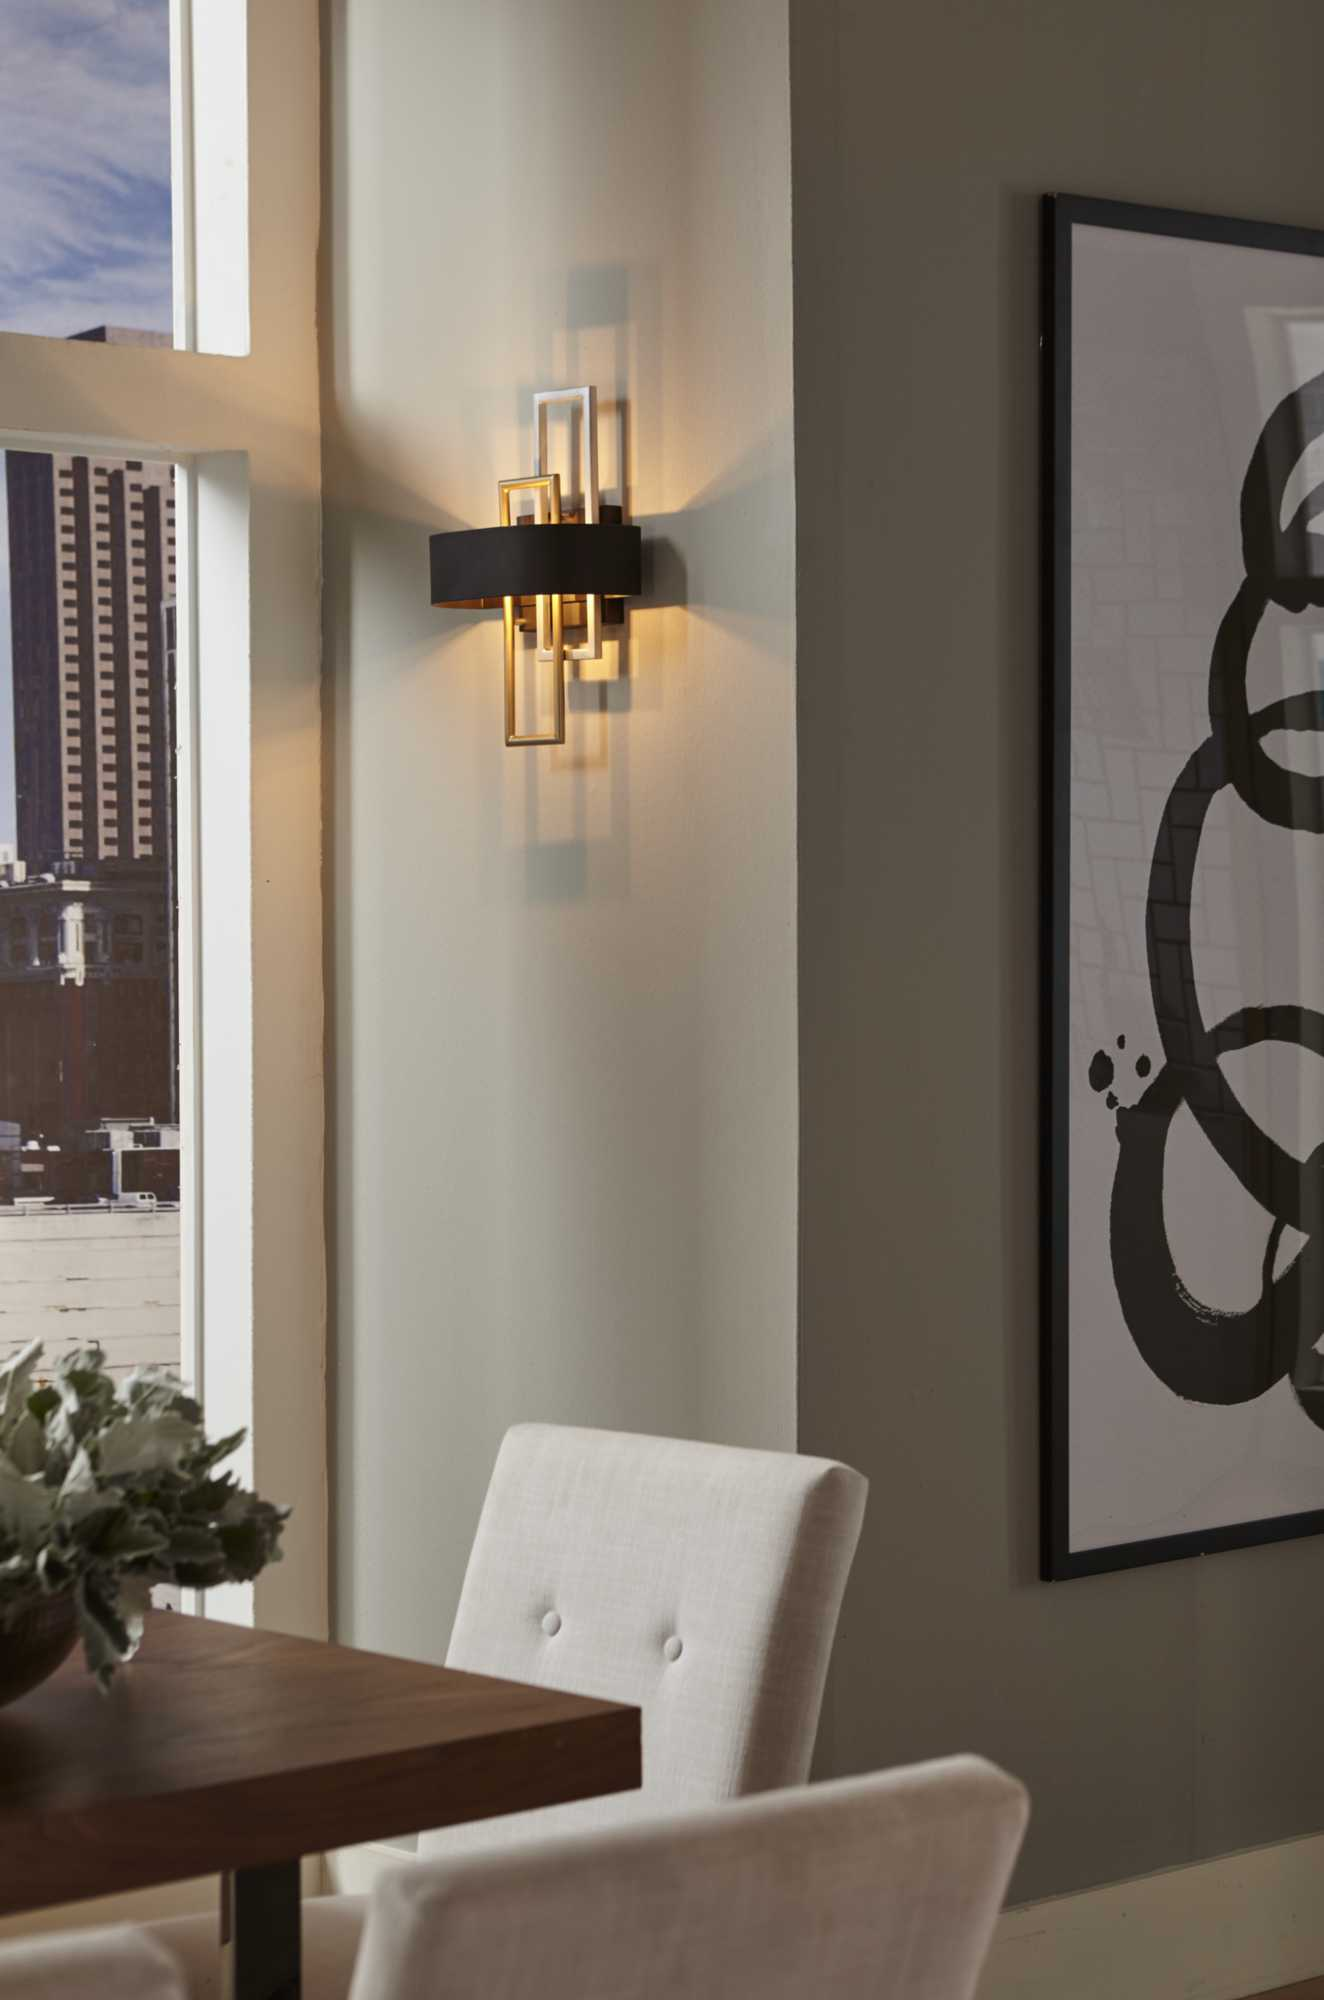 how to use wall sconce lighting to